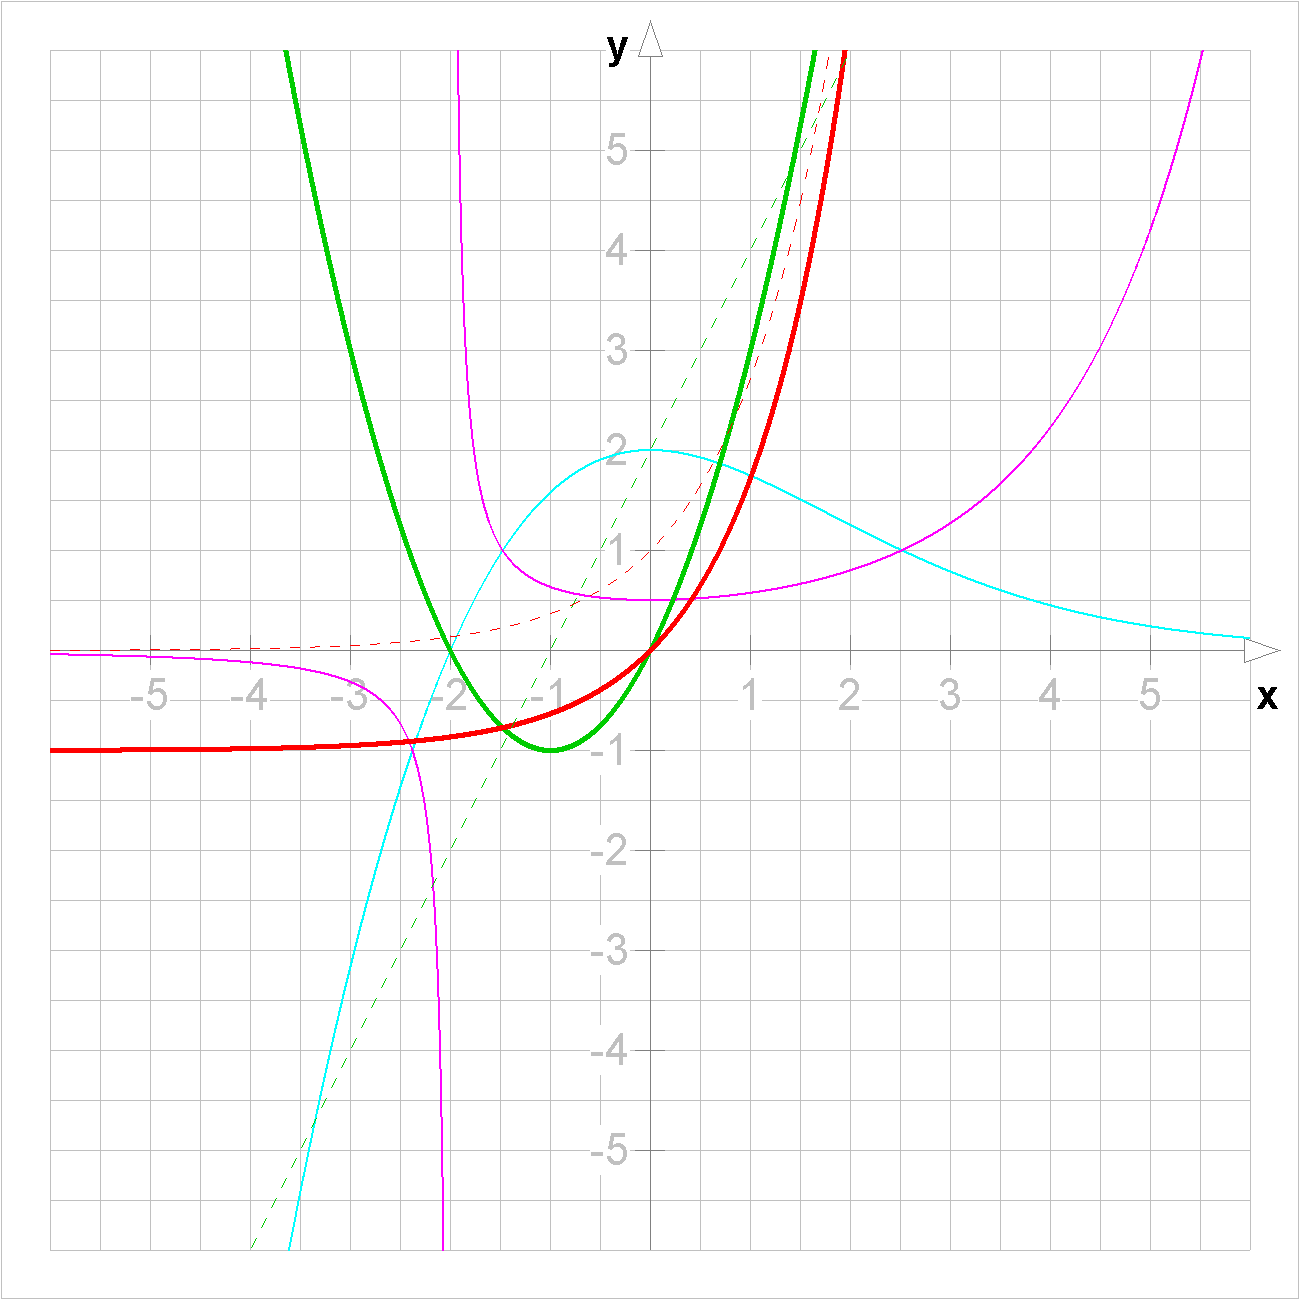 Fct erfc besides Fonction Carre together with Like Exam together with ViewGONode in addition Hermite. on function graph